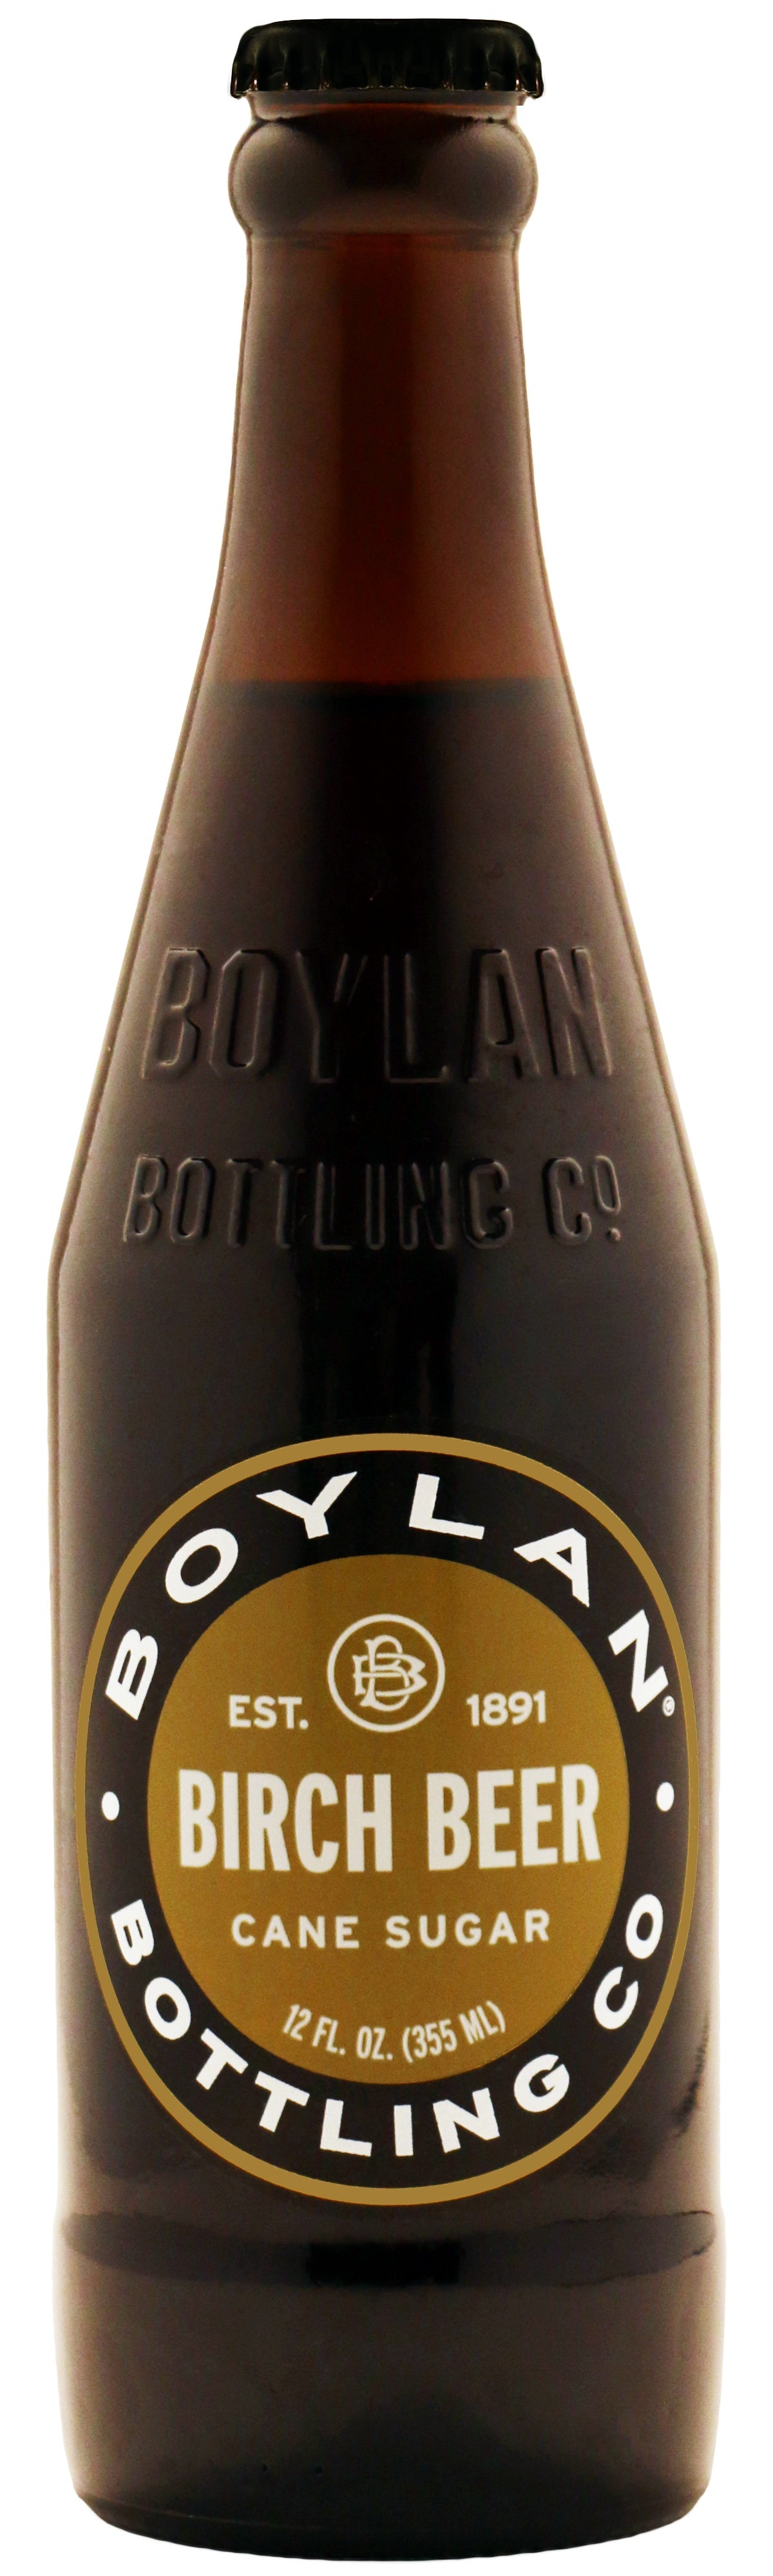 Food & Drink - Boylan Bottleworks - Original Birch Beer, 343 Ml